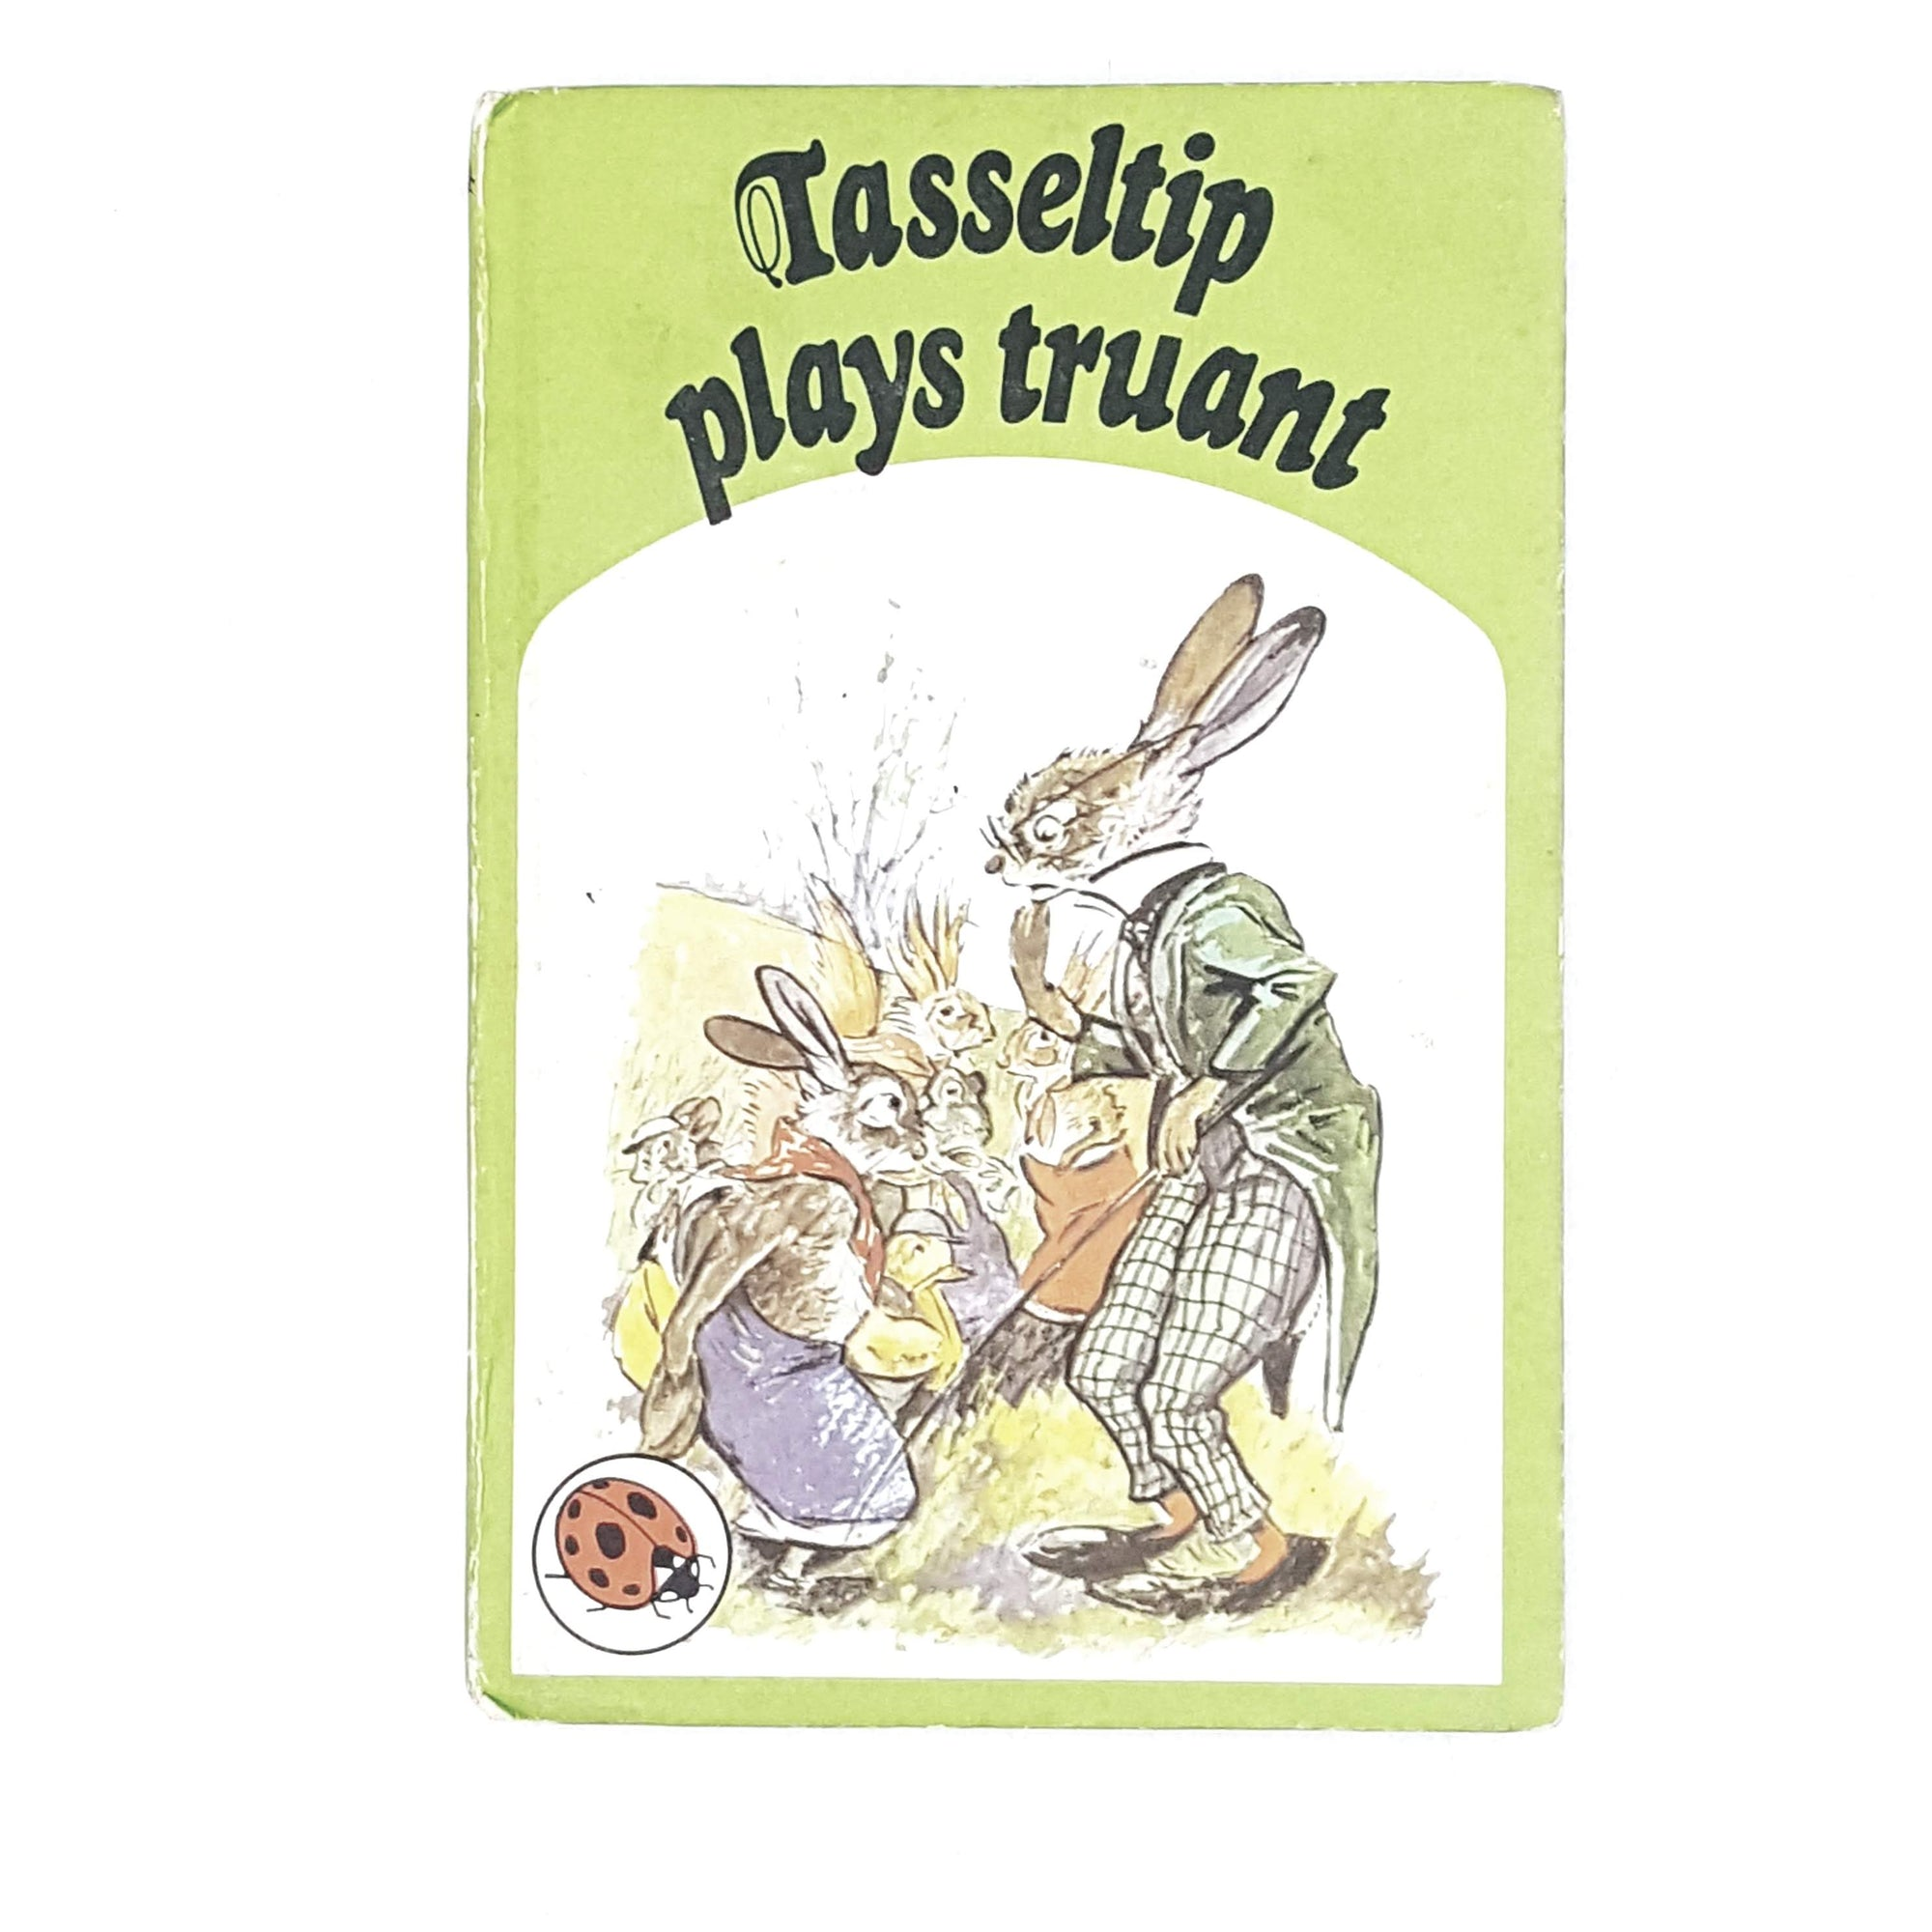 vintage-ladybird-tasseltip-plays-truant-1975-kindergarten-books-country-house-library